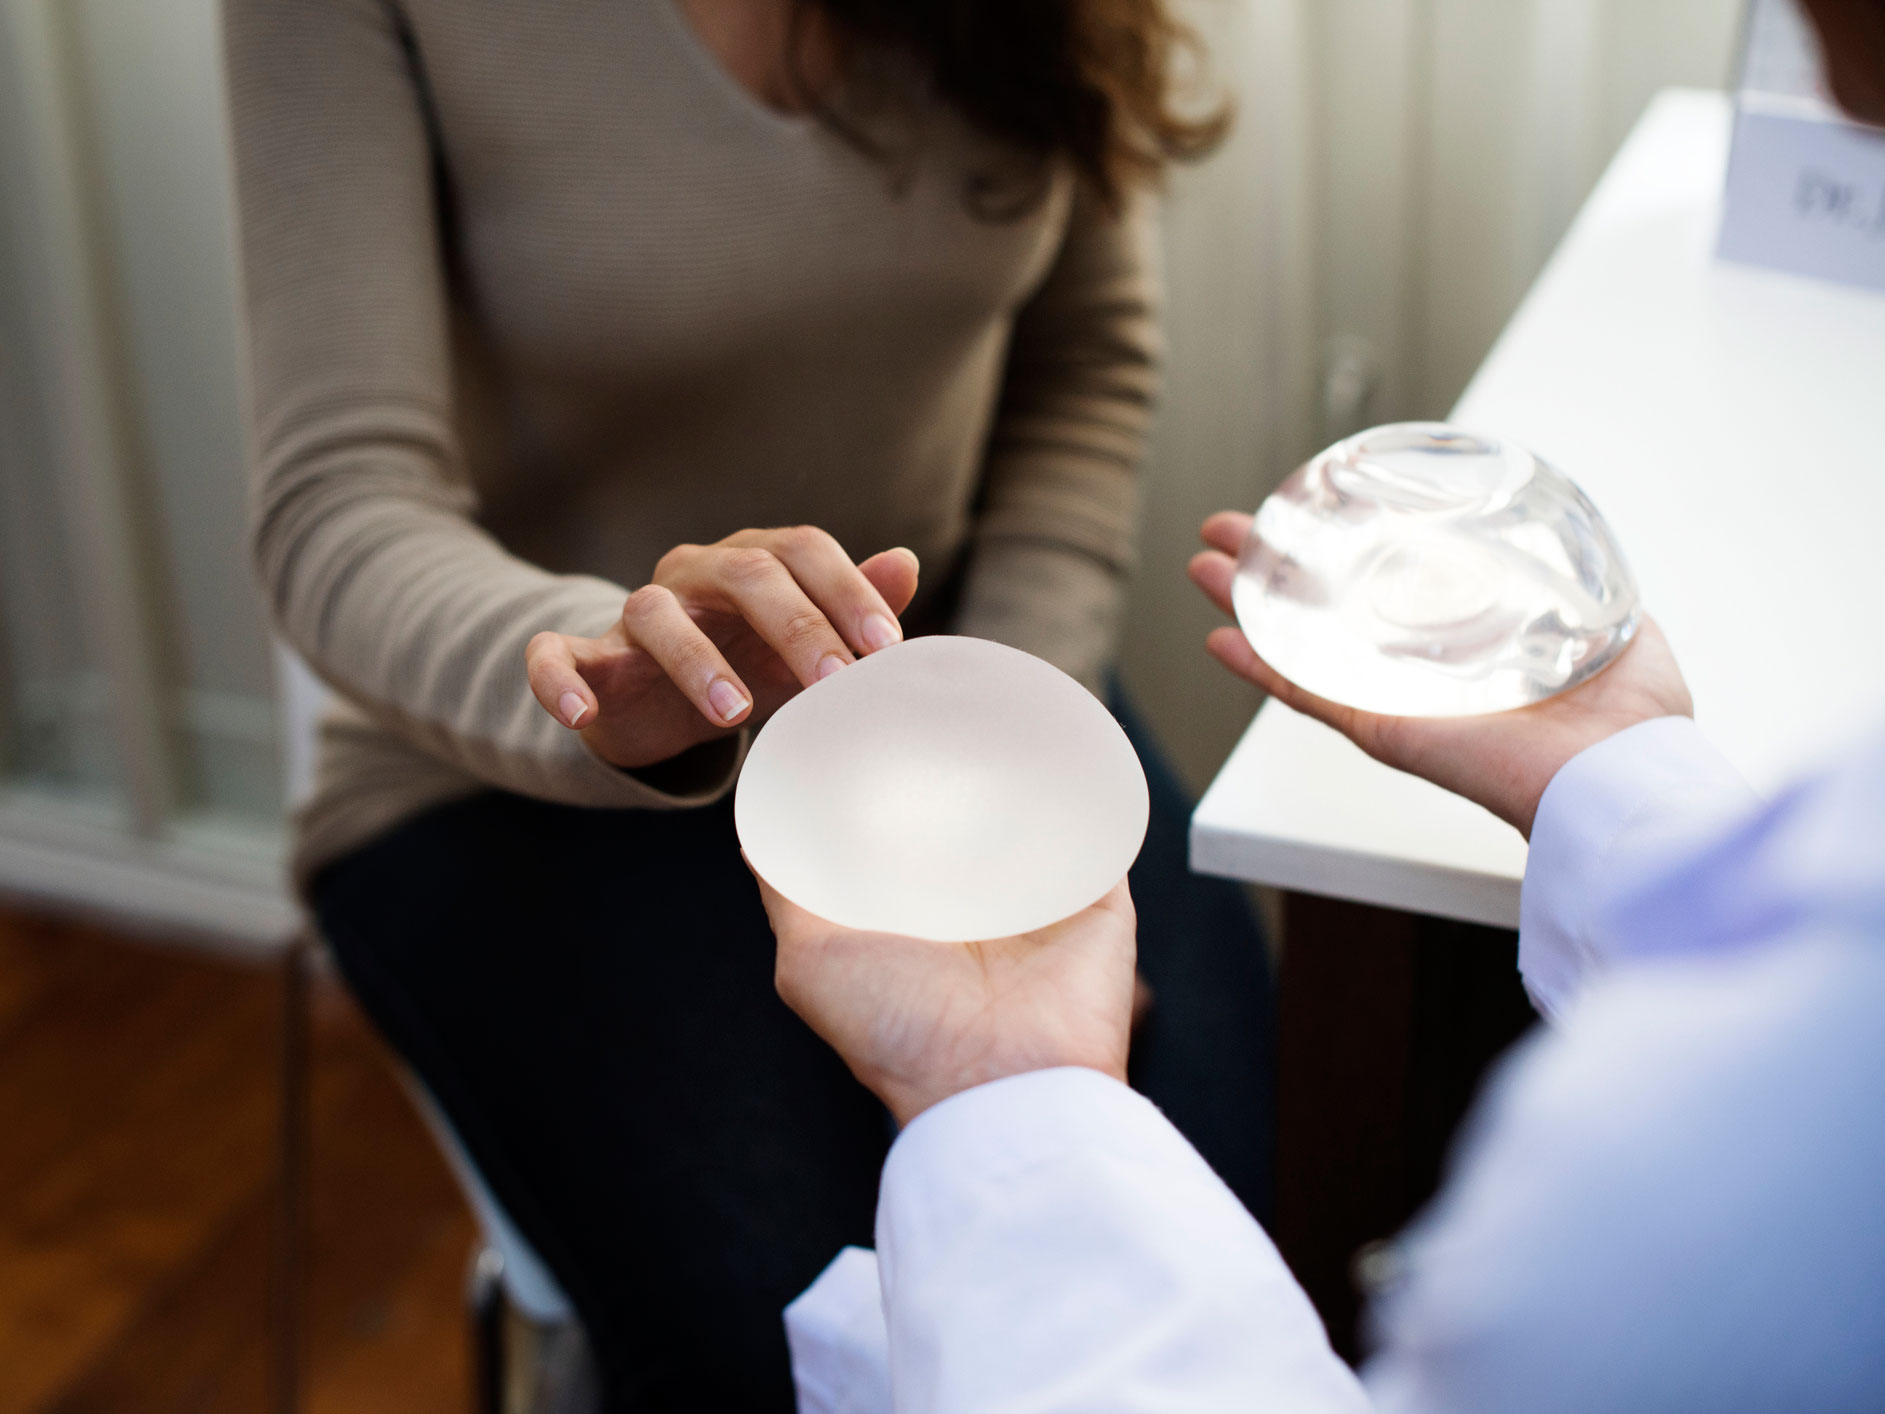 A Rare Cancer Caused By Breast Implants - Easy Health Options-1335